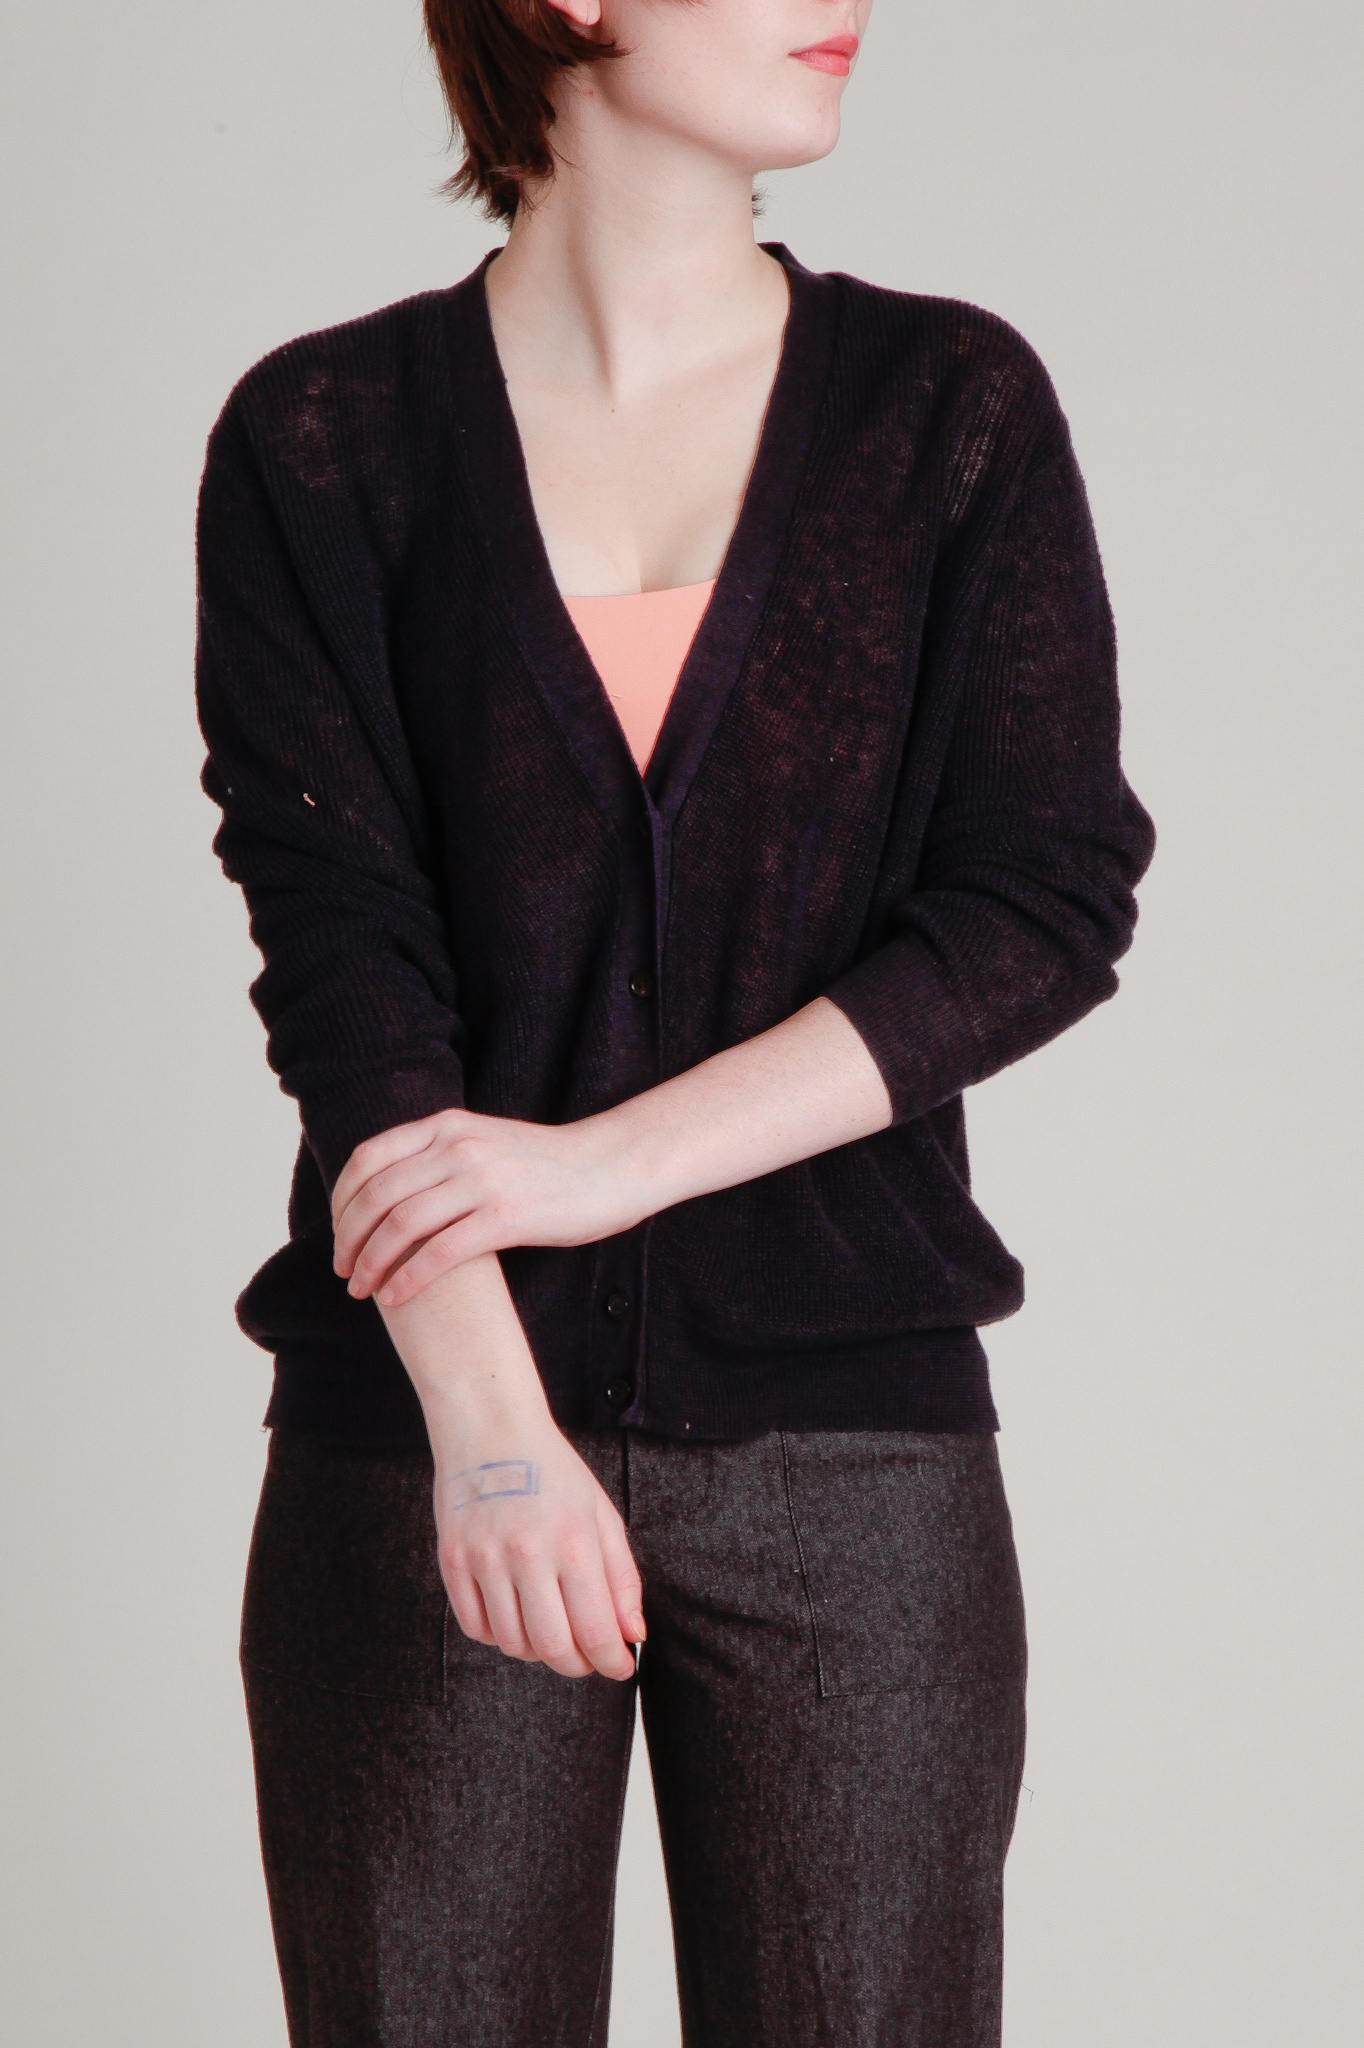 Demy Lee Linen Navy Cardigan